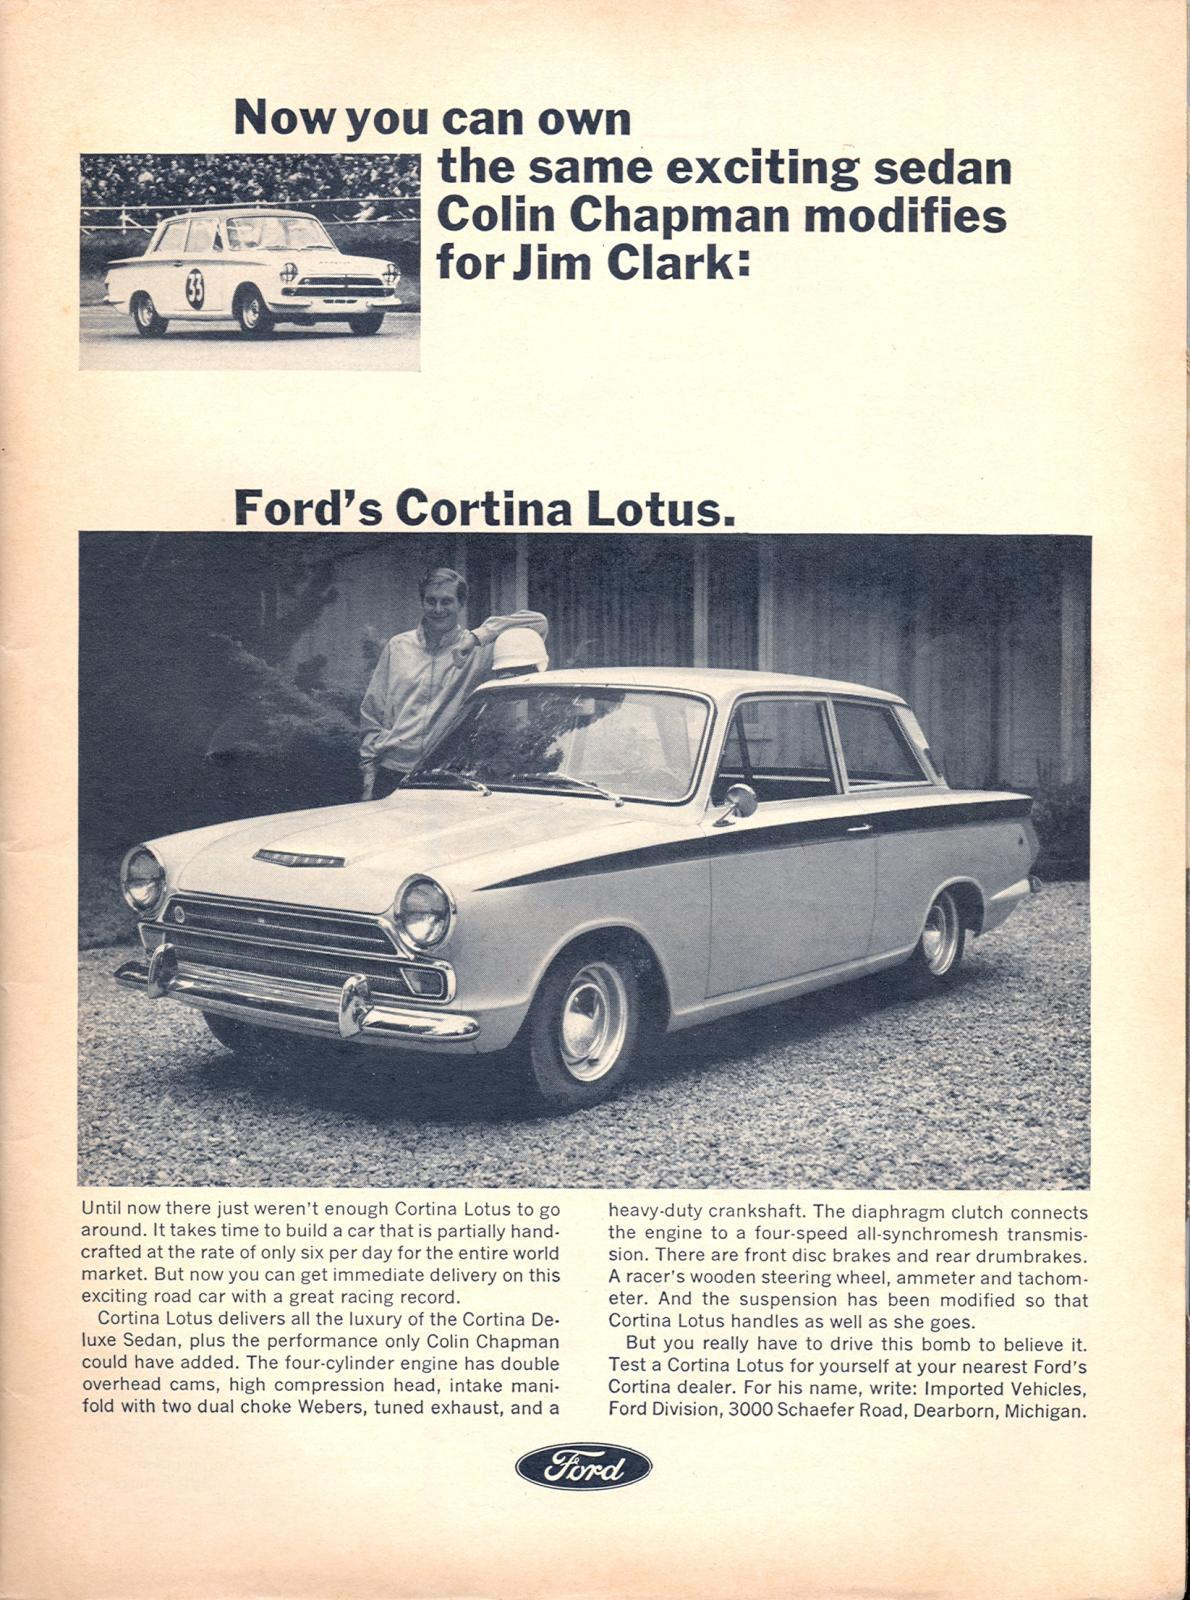 Ford Cortina Lotus Ad from 1966.